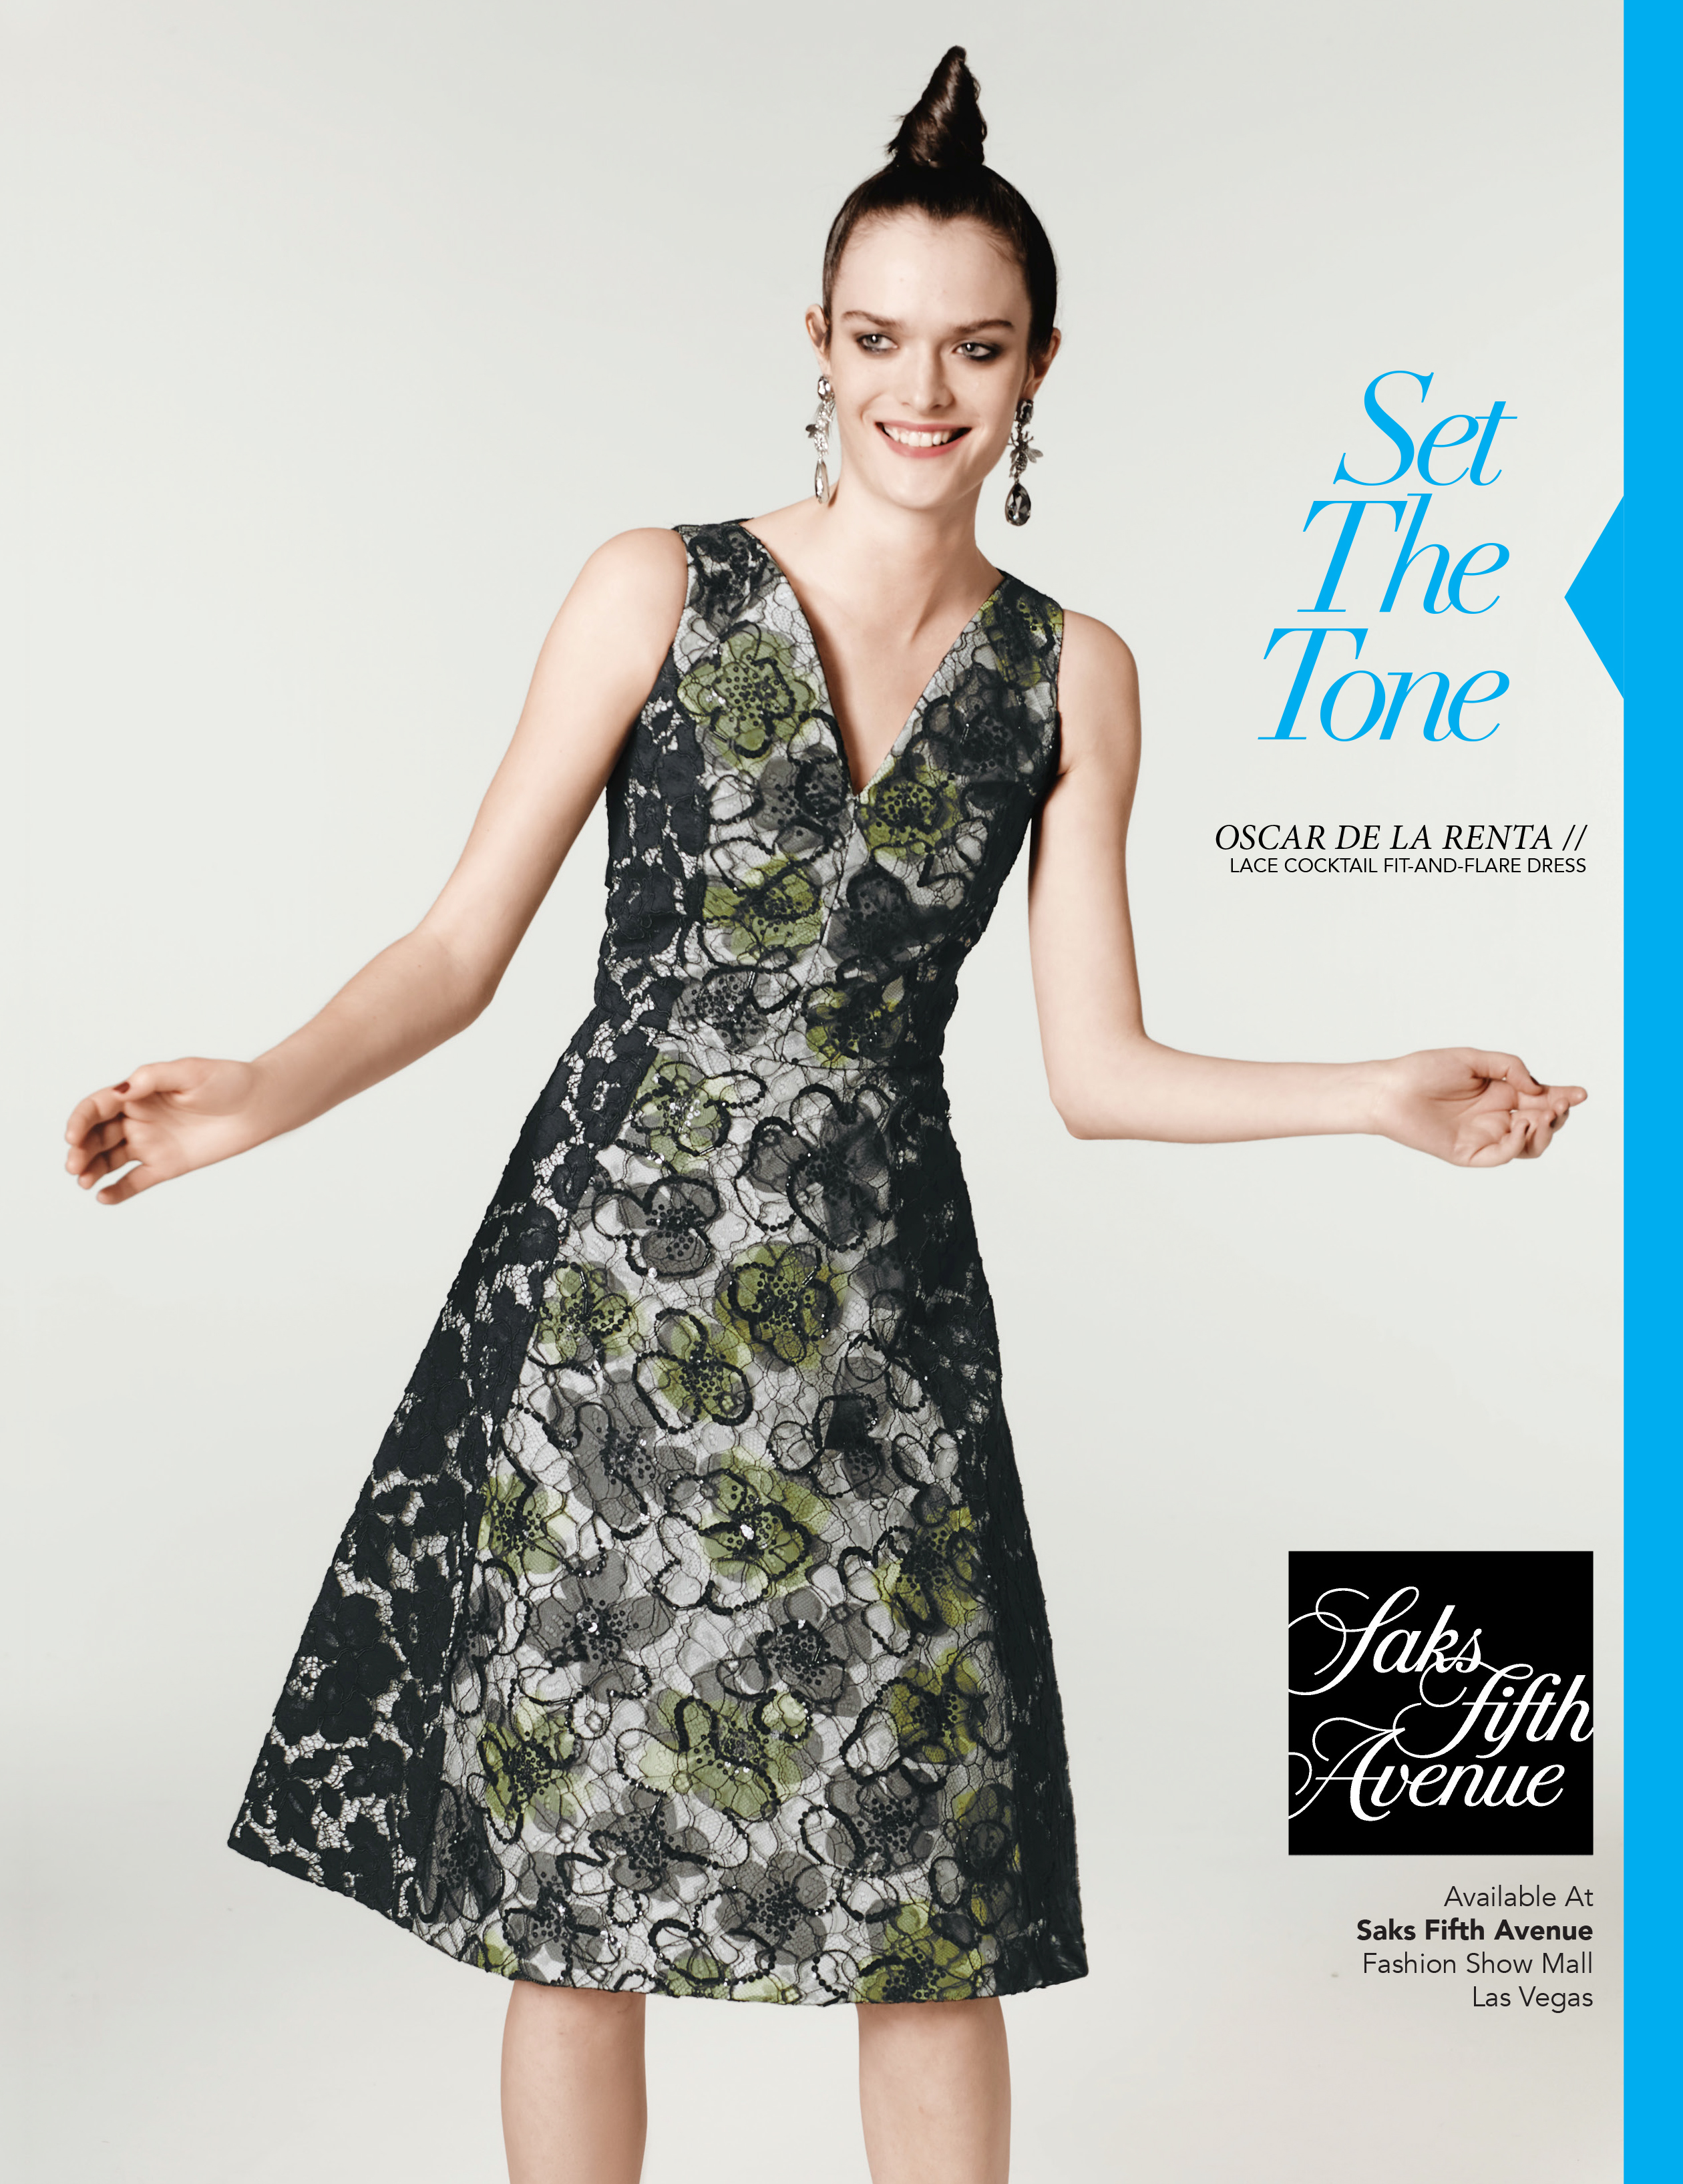 Saks Fifth Avenue: Set The Tone | Vegas Legal Magazine